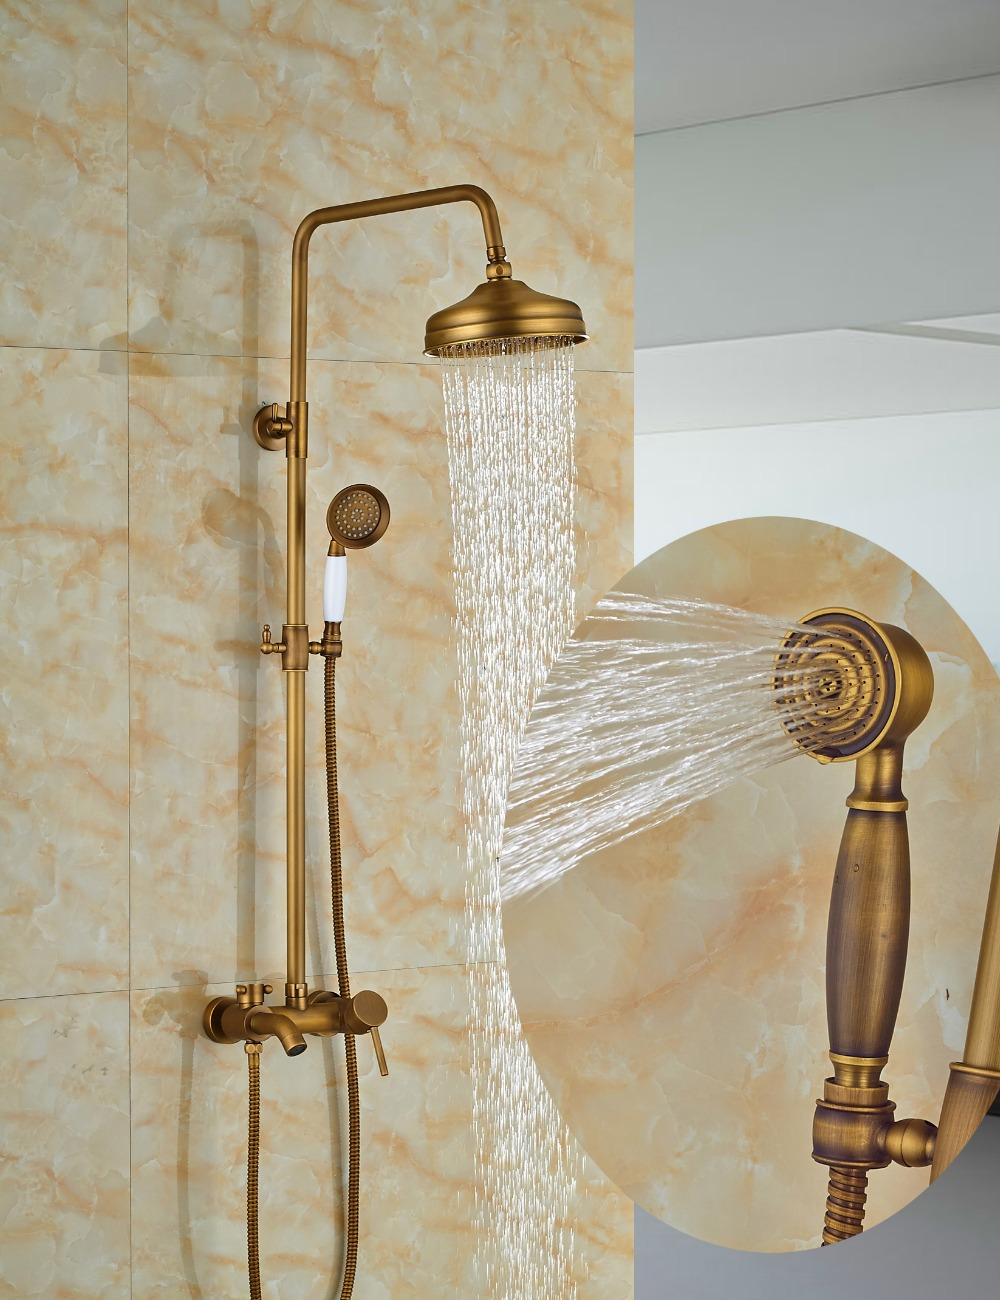 Wholesale And Retail Classic Antique Brass Round Rain Shower Head Wall Mounted Shower Column Mixer Tap W/ Tub Spout luxury wholesale and retail promotion antique brass wall mounted 8 round rain shower faucet set single handle mixer